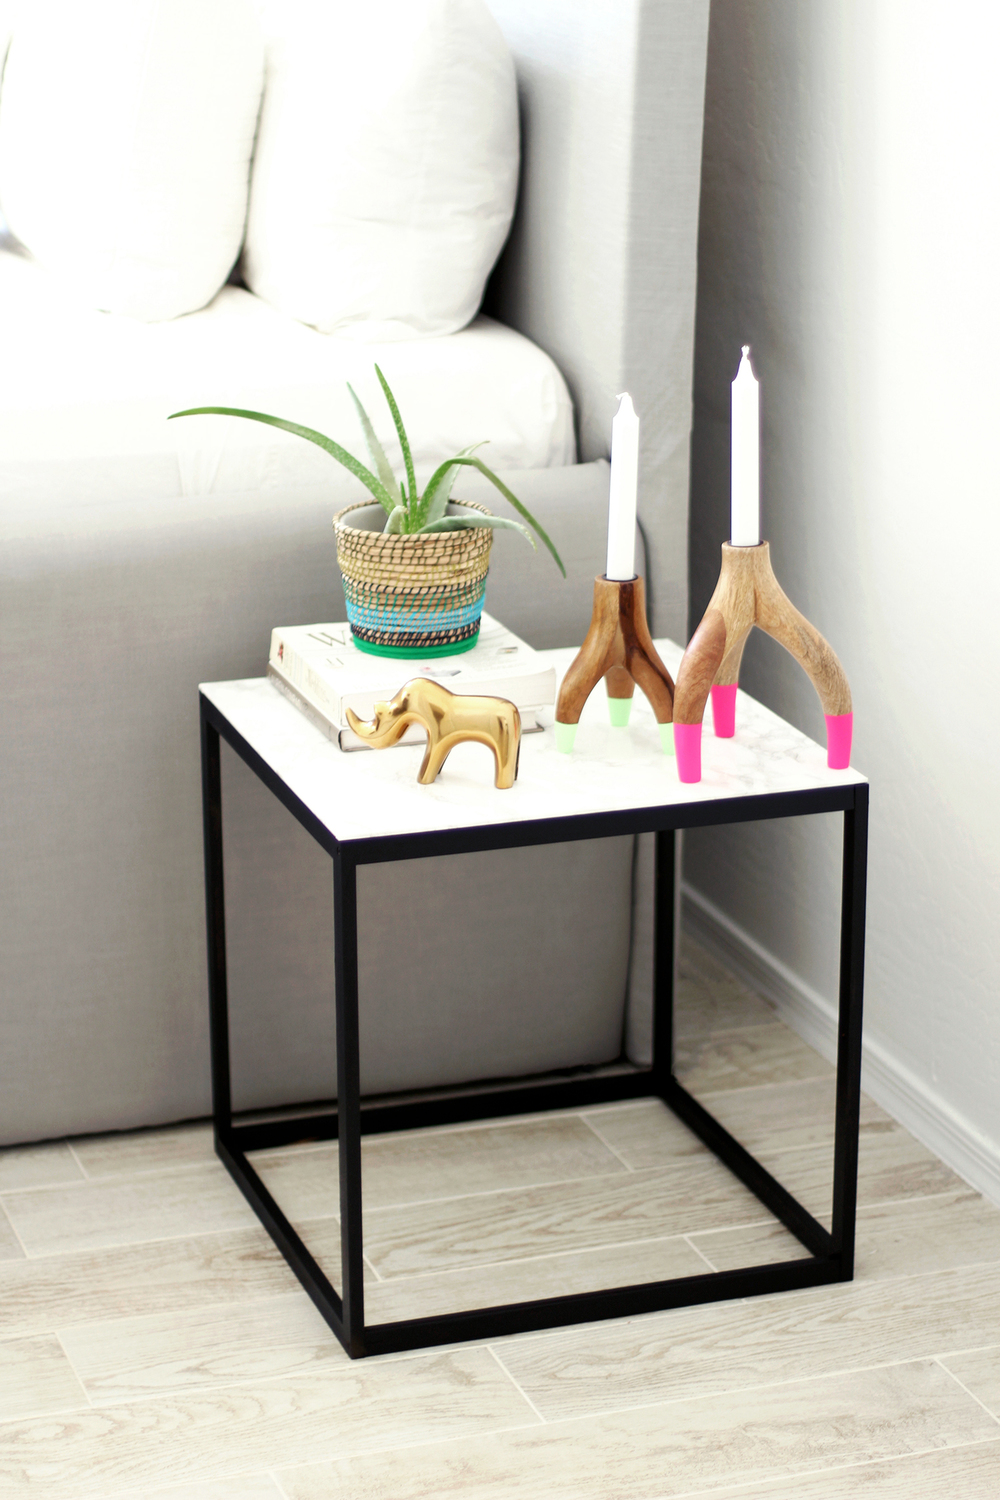 West Elm Inspired Diy Marble Table Kristi Murphy Diy Ideas